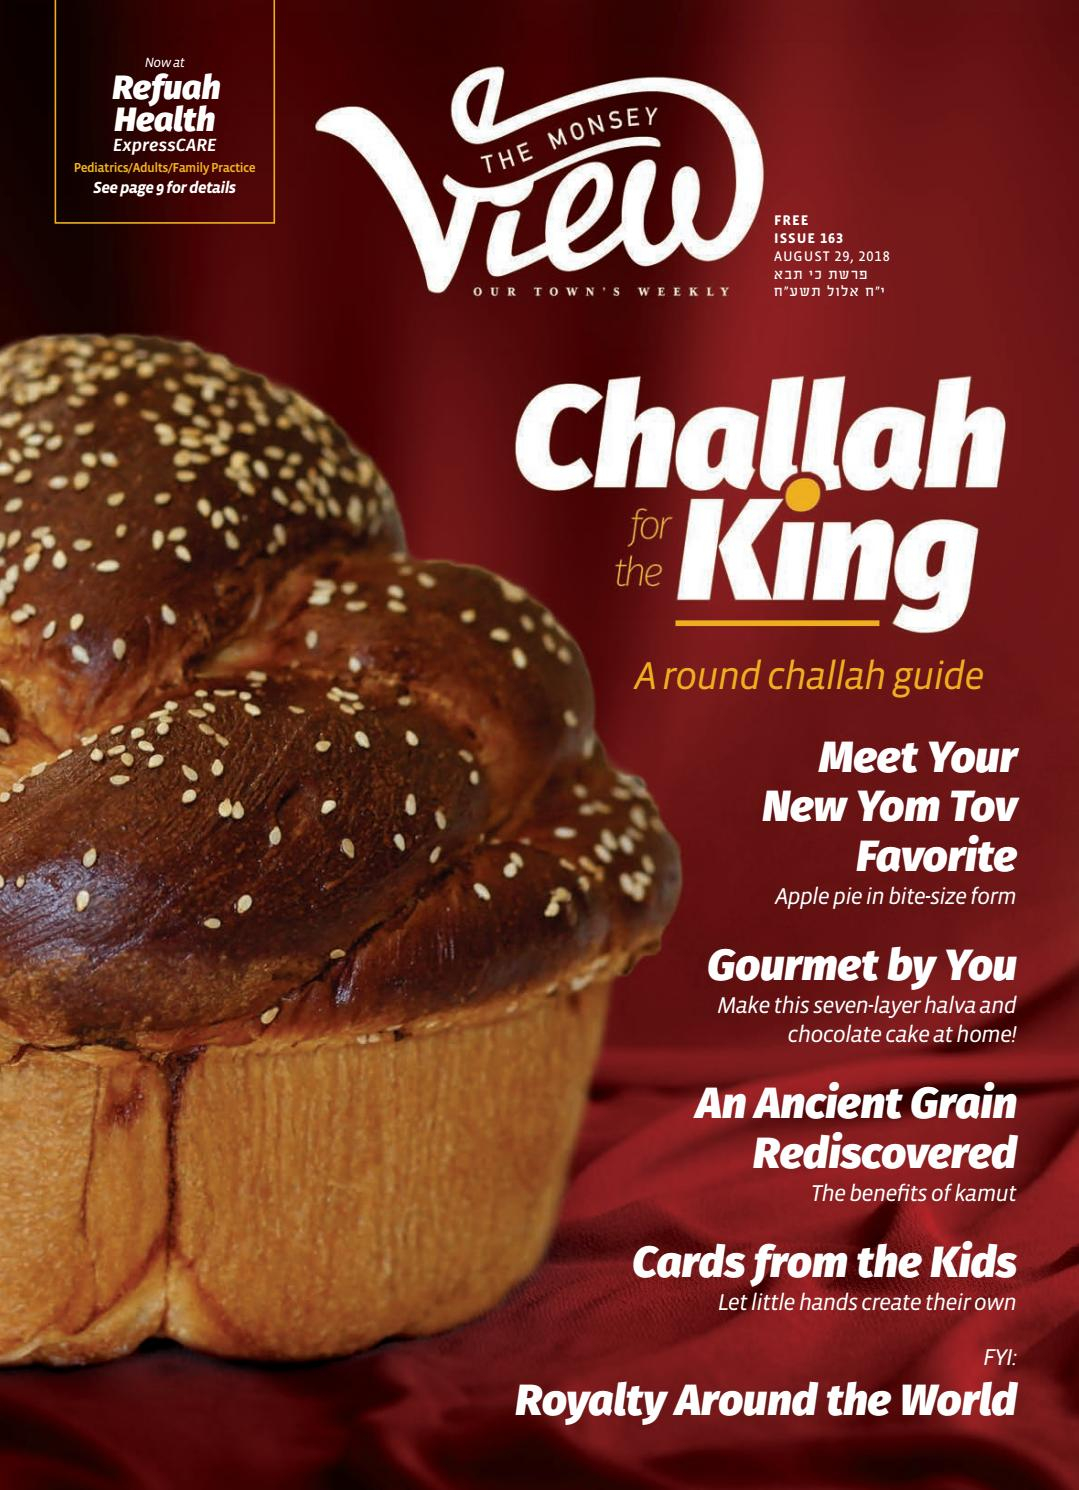 Issue 163 by The Monsey View - issuu